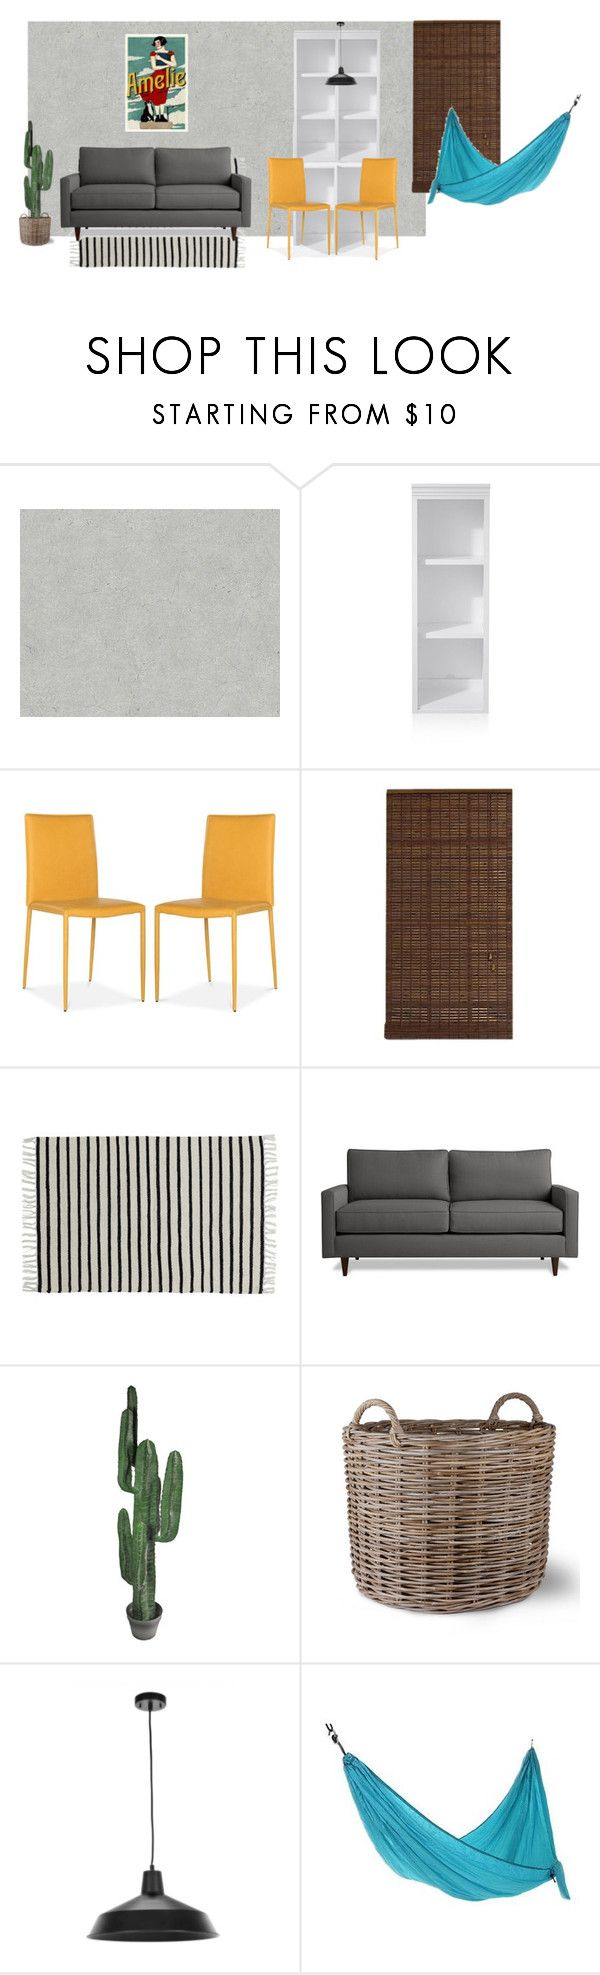 """sala"" by anaunderground on Polyvore featuring interior, interiors, interior design, casa, home decor, interior decorating, Crate and Barrel, Radiance, Liberty e Abigail Ahern"